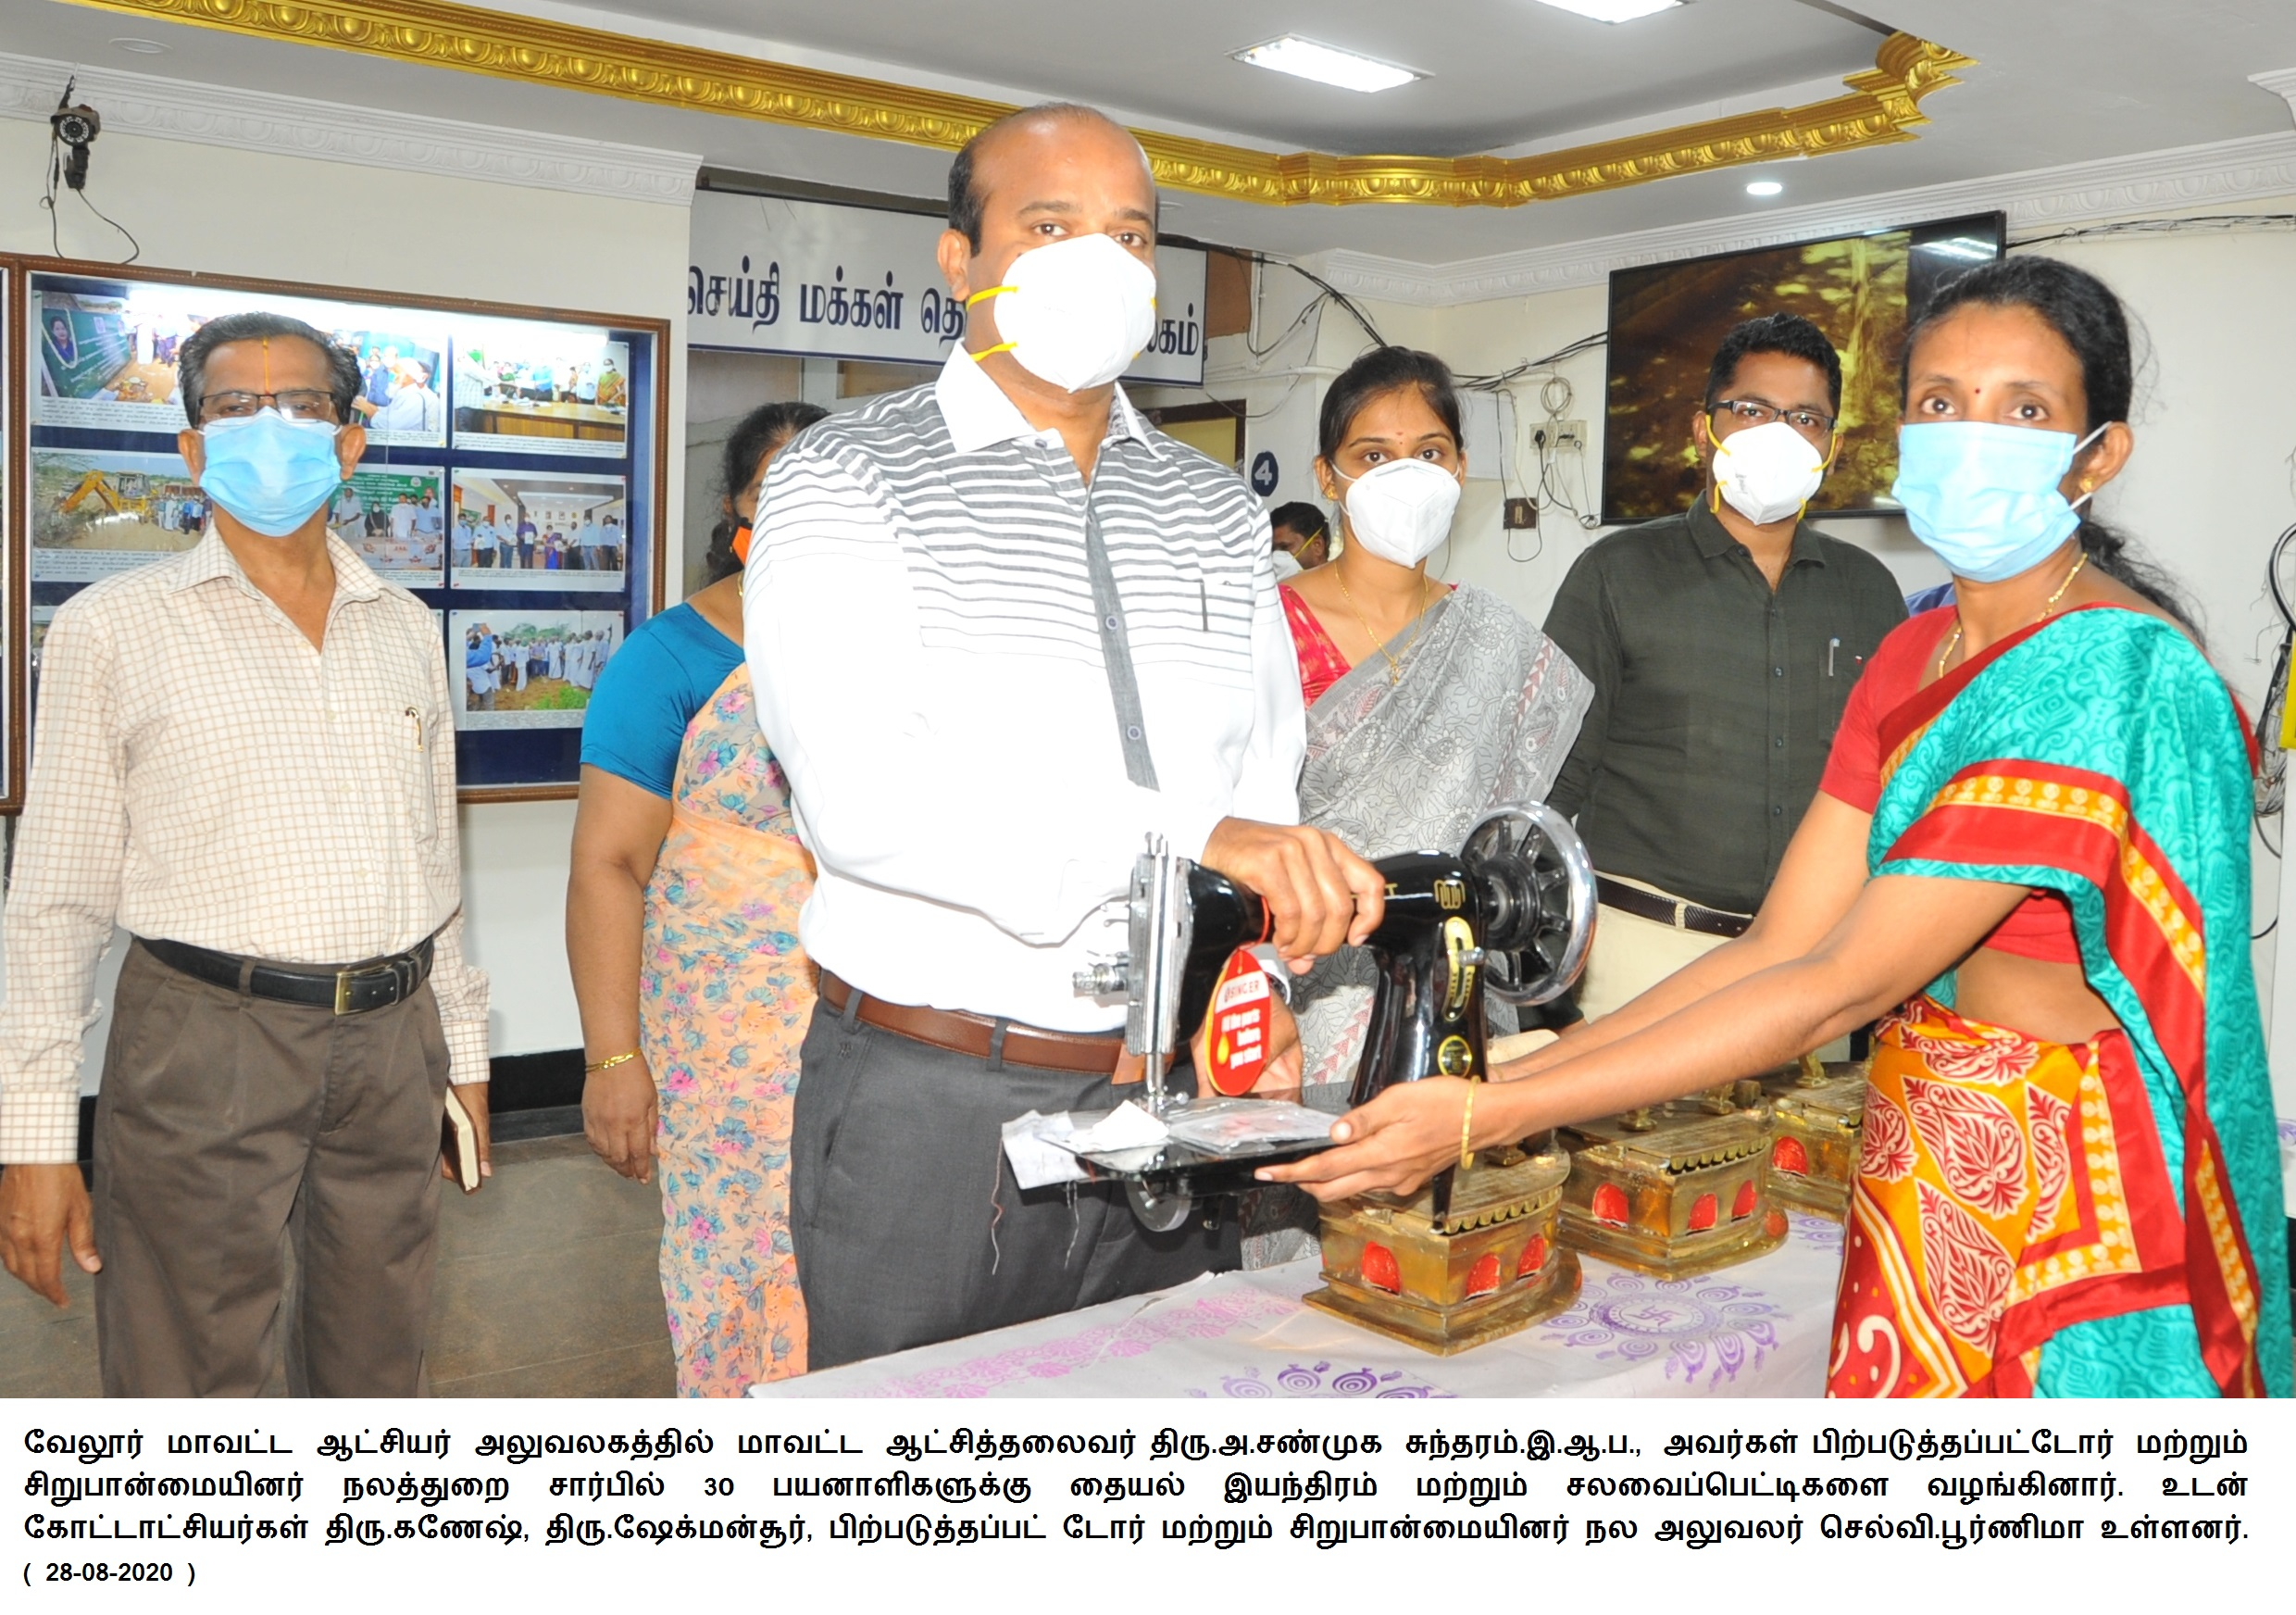 District Collector given the Tailor Machine to Beneficiaries 28-08-2020